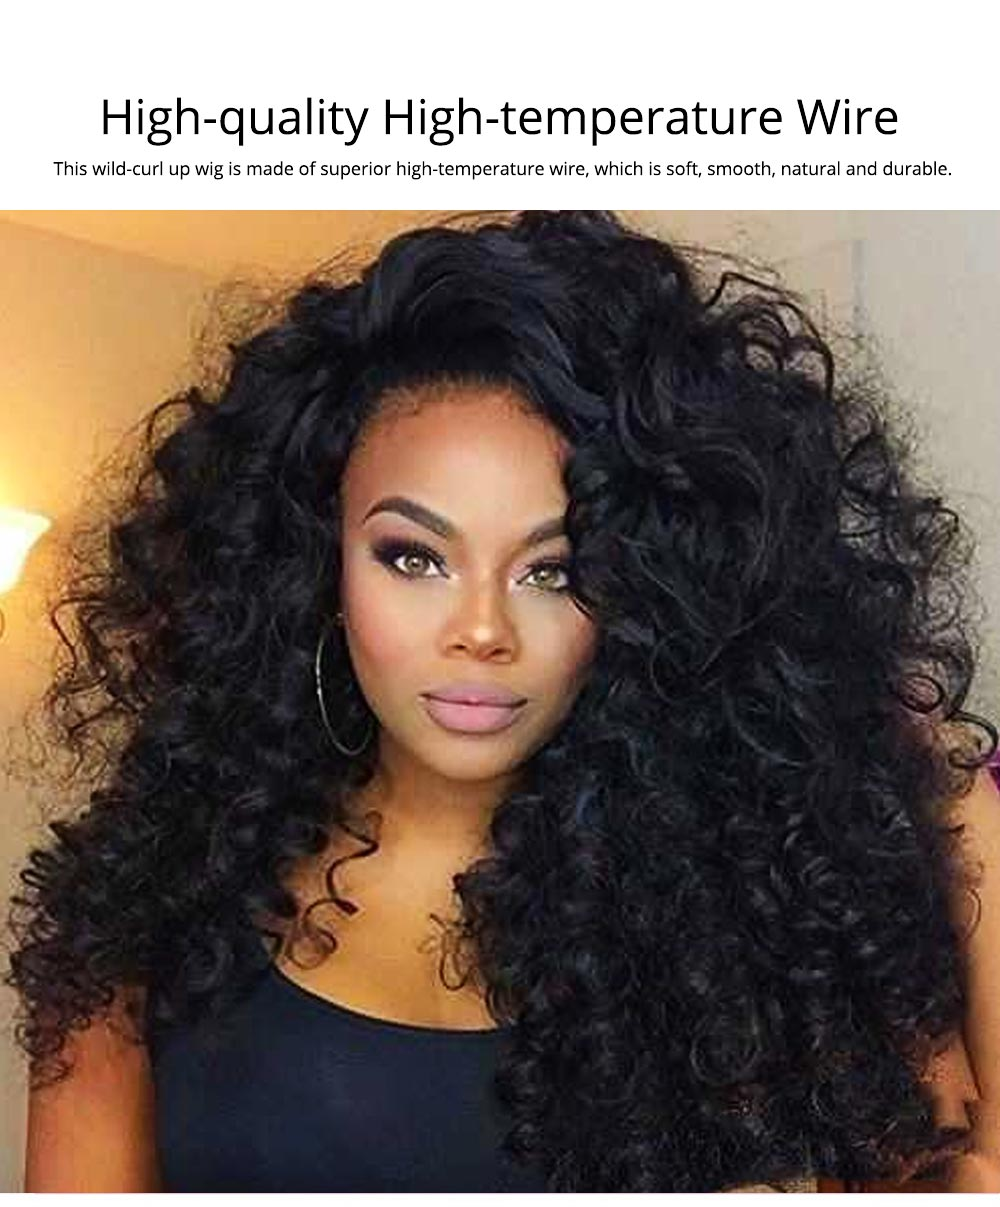 Delicate Black High-temperature Wire Long Curly Wig, Quality Wild-curl Up Hairpiece with Breathable Rose Model Inner Net 1